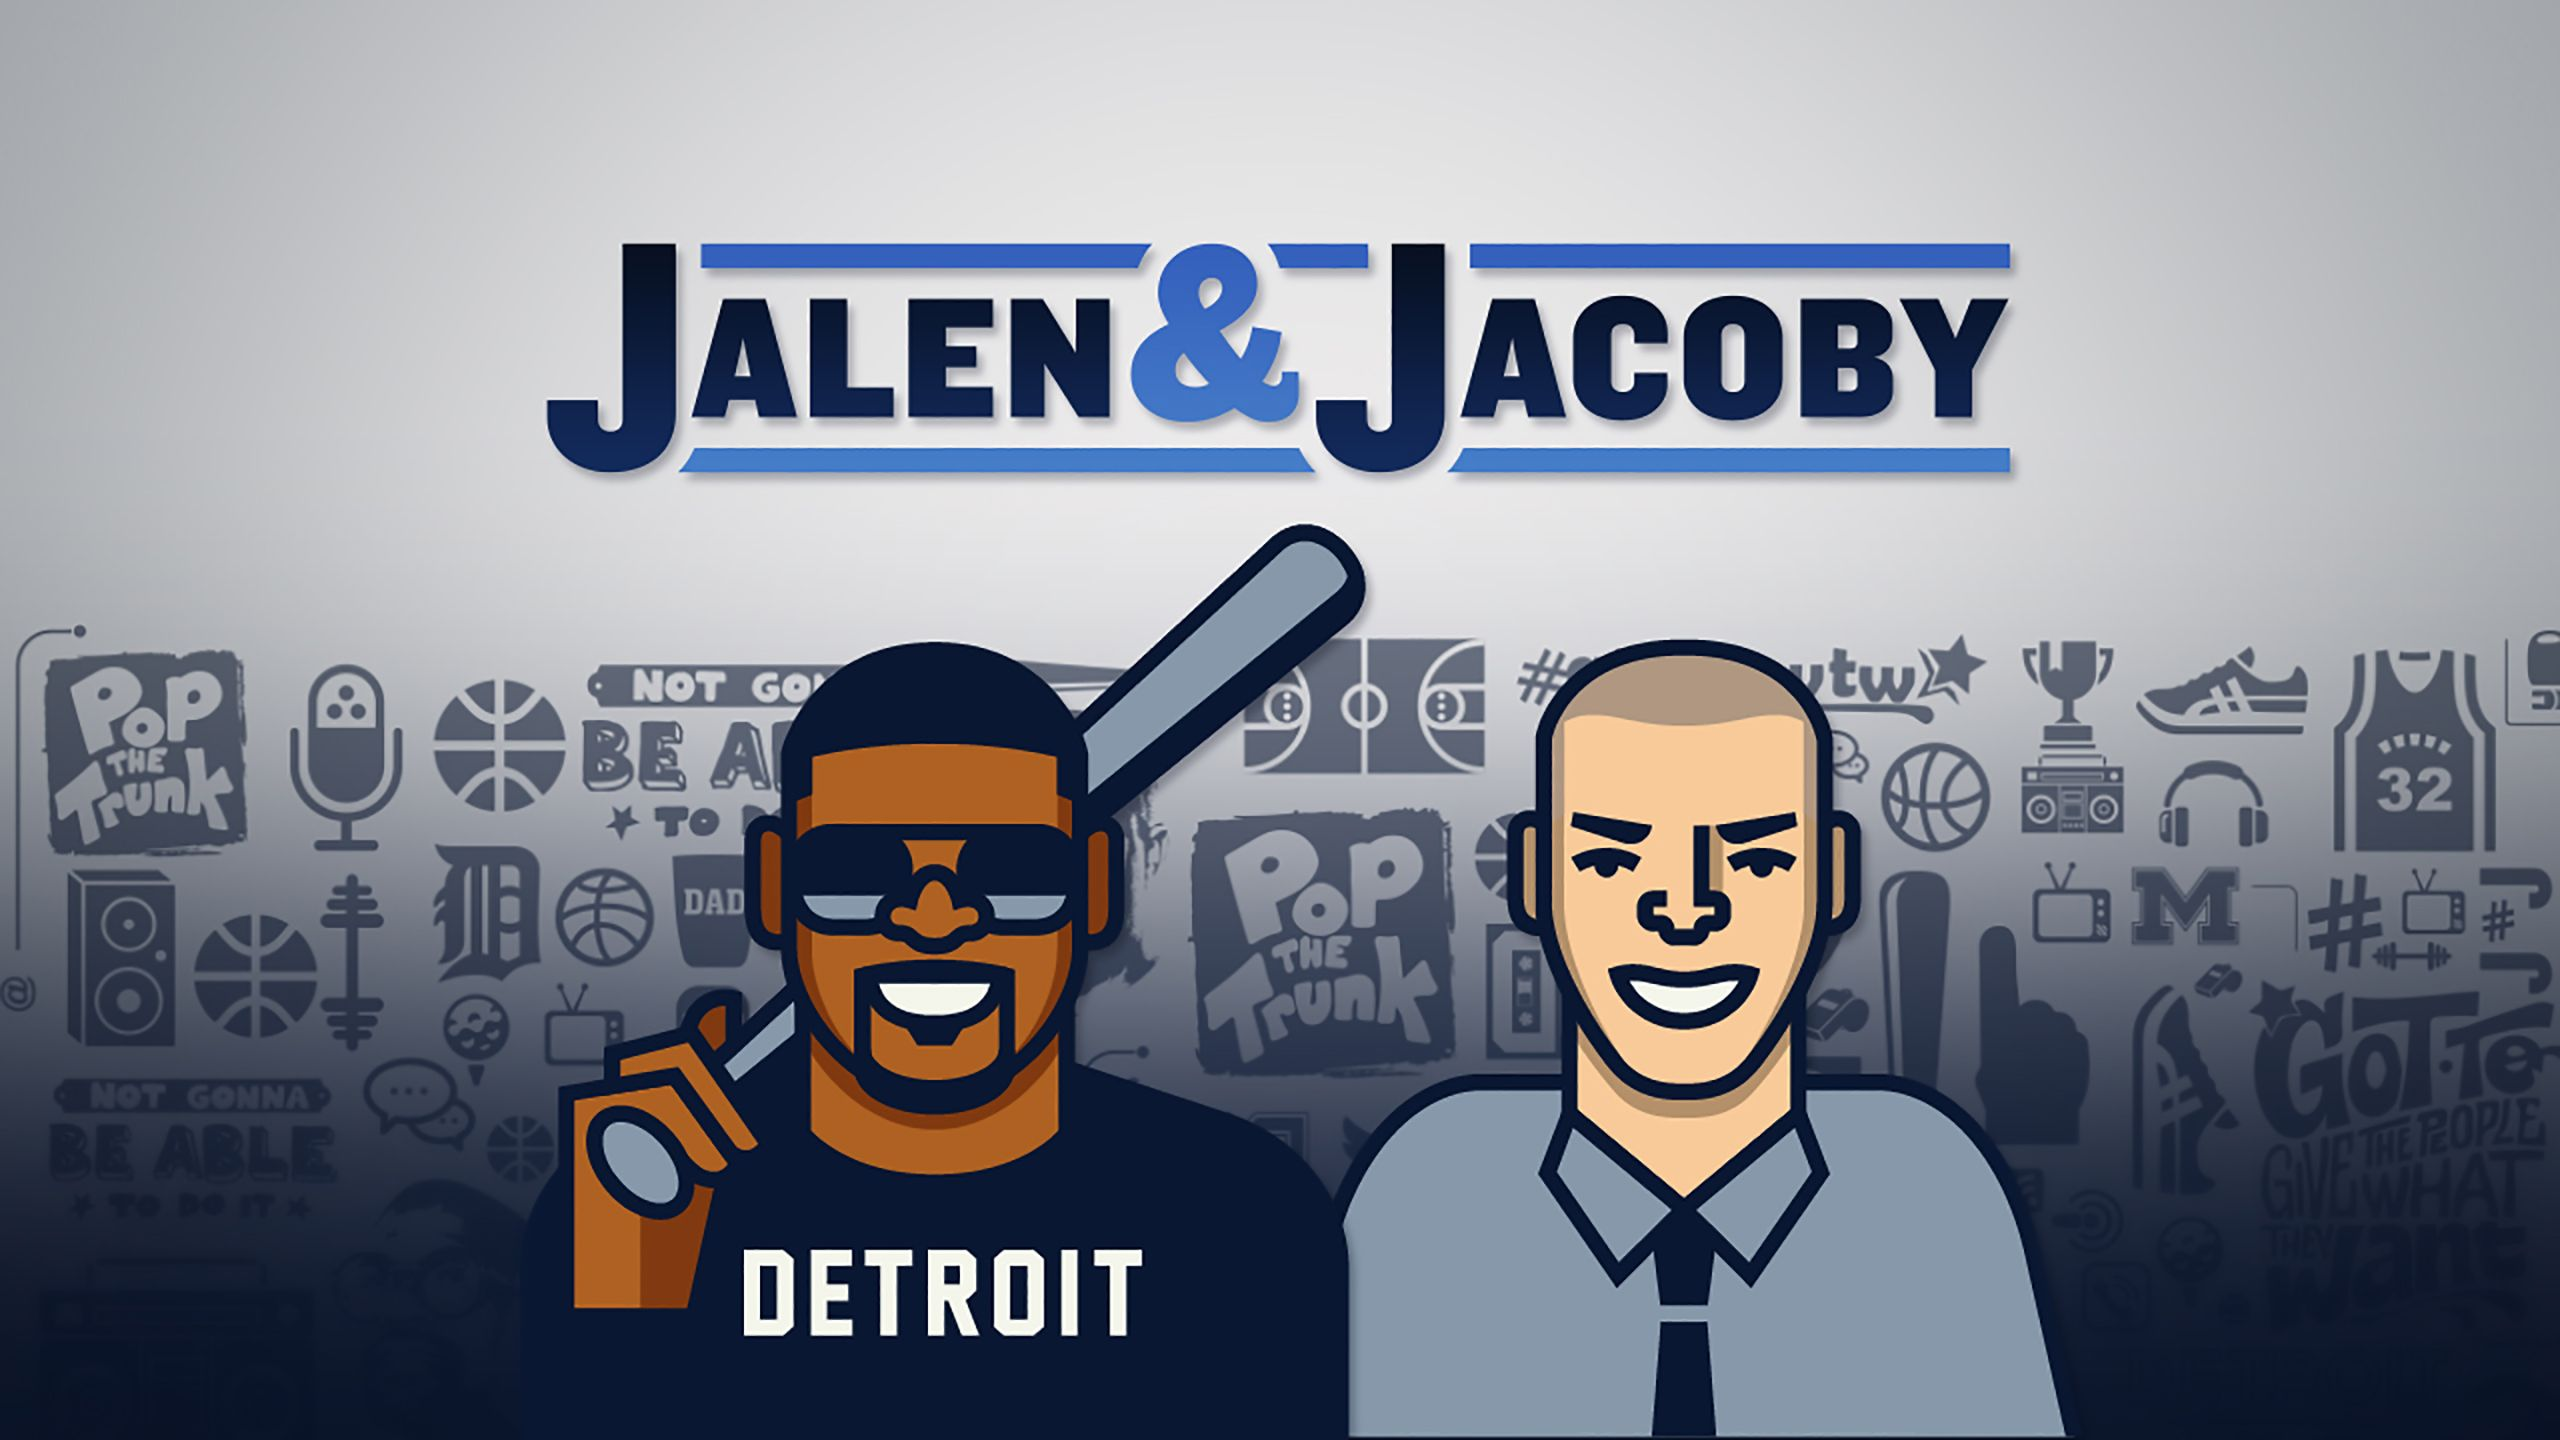 Wed, 3/21 - Jalen & Jacoby